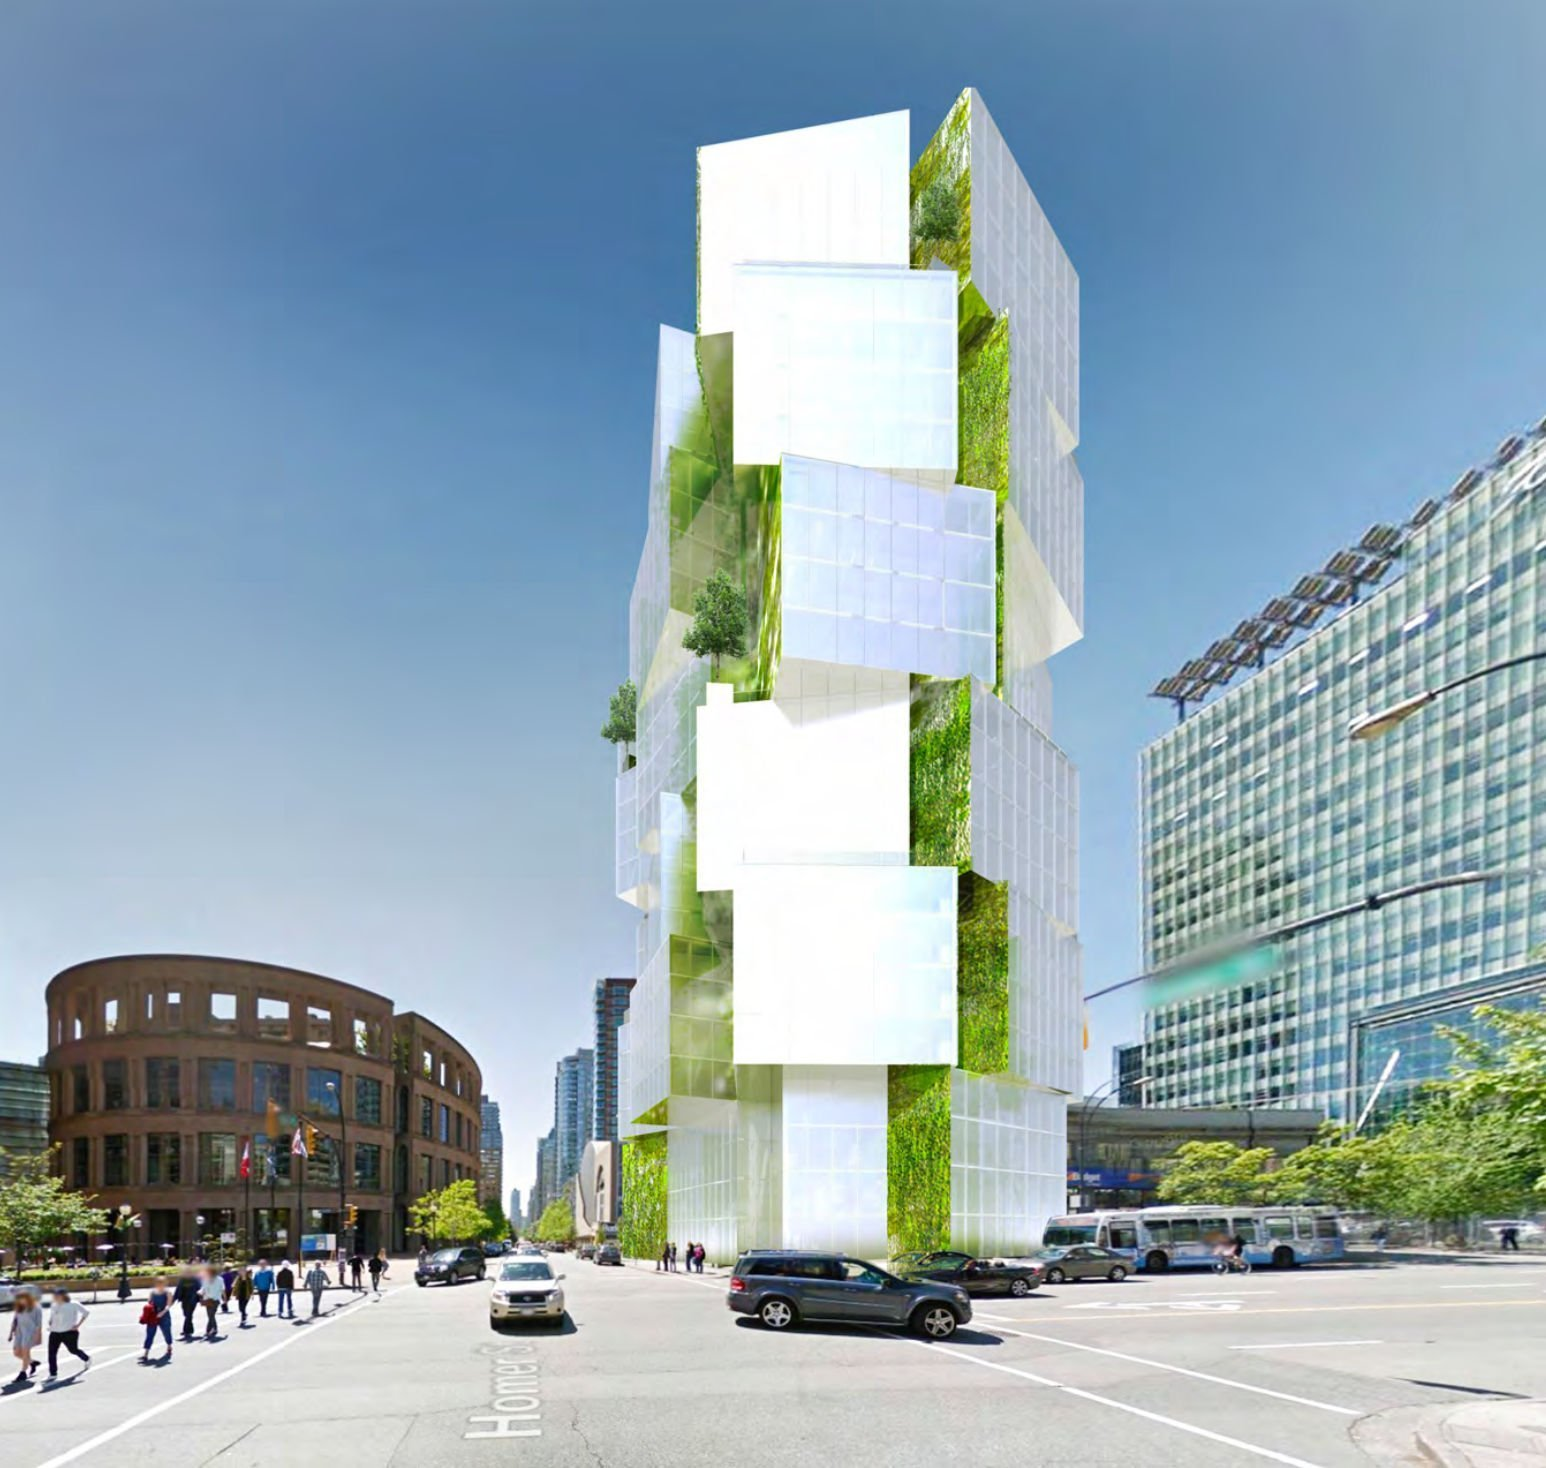 Vancouver Buildings: Office Tower Proposed Across From Vancouver Public Library